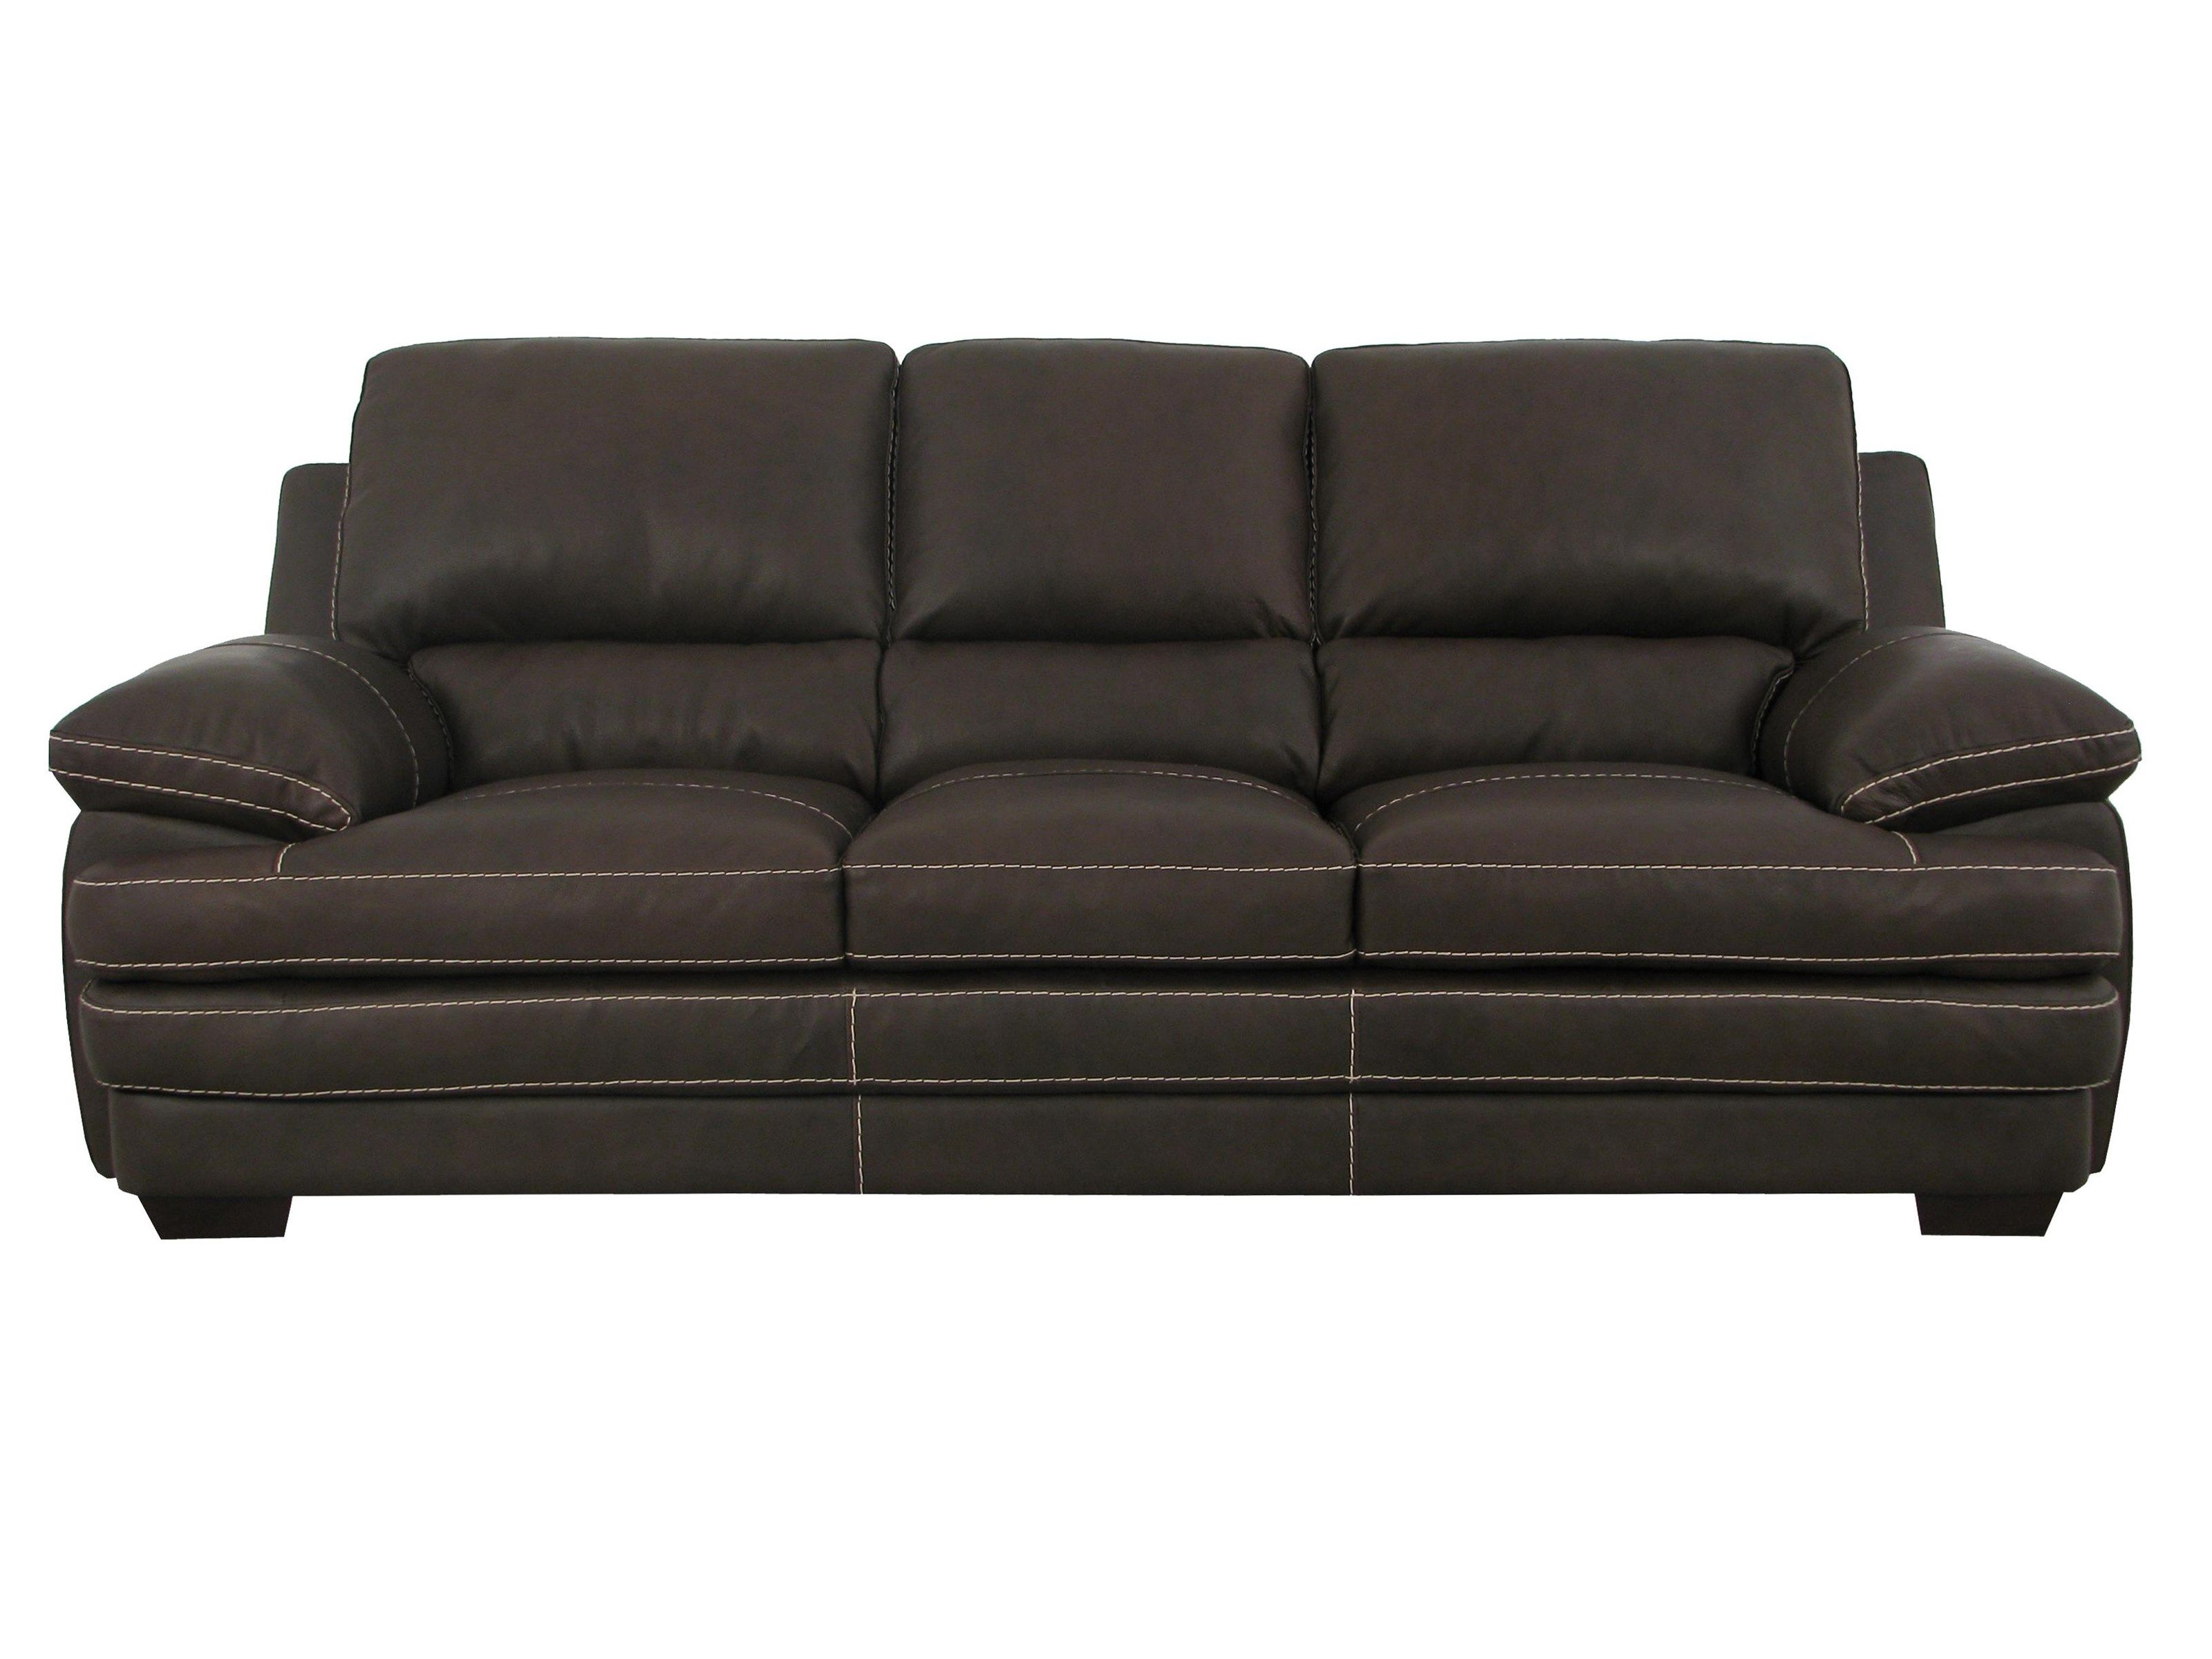 For The Soft Line 4806 Leather Sofa At Hudson S Furniture Your Tampa St Petersburg Orlando Ormond Beach Sarasota Florida Mattress